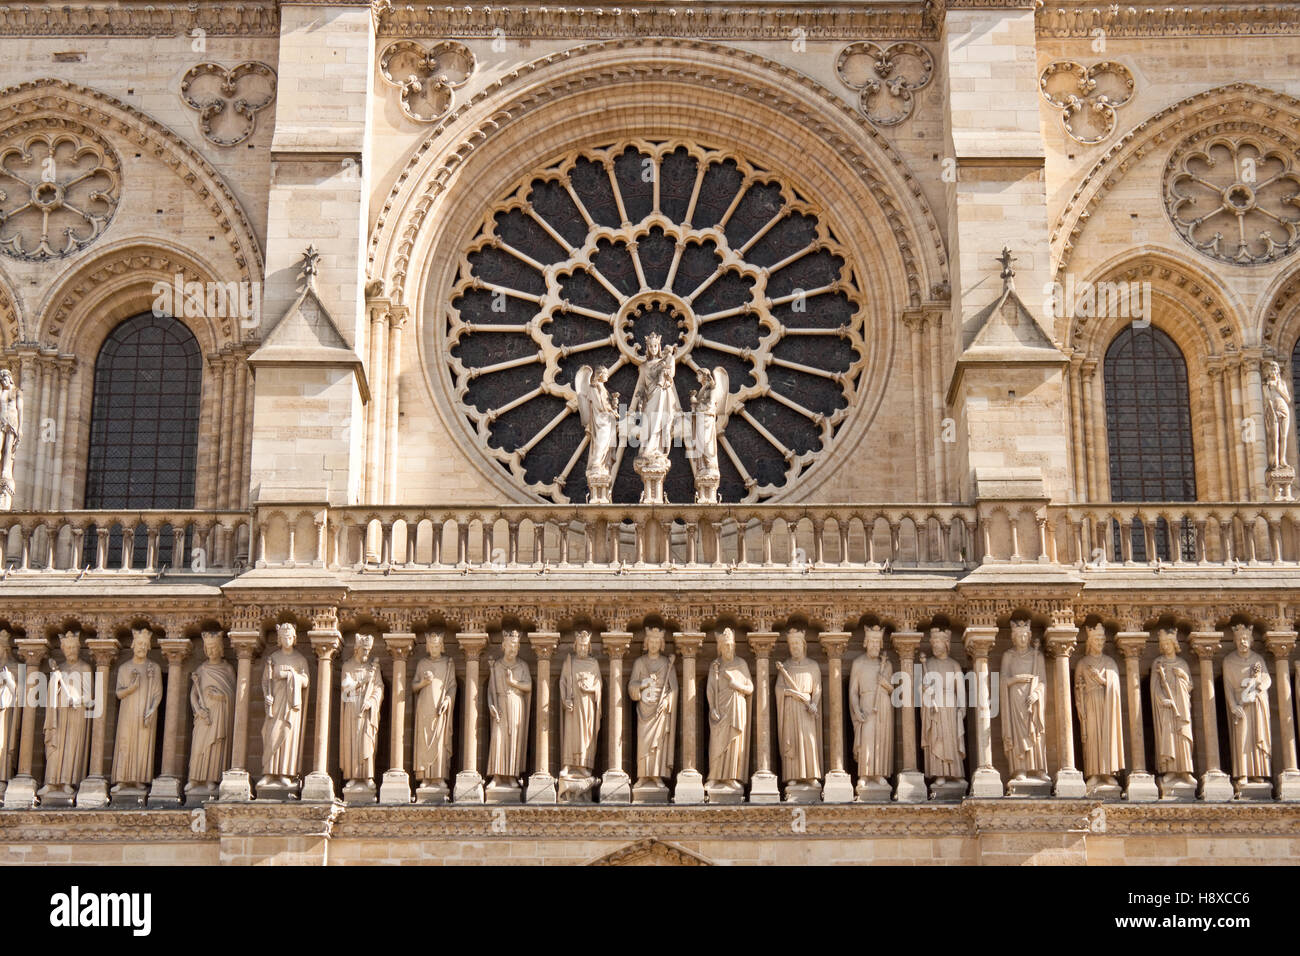 Closeup view of the Notre Dame de Paris Cathedral facade with kings' statues and rose window - Stock Image